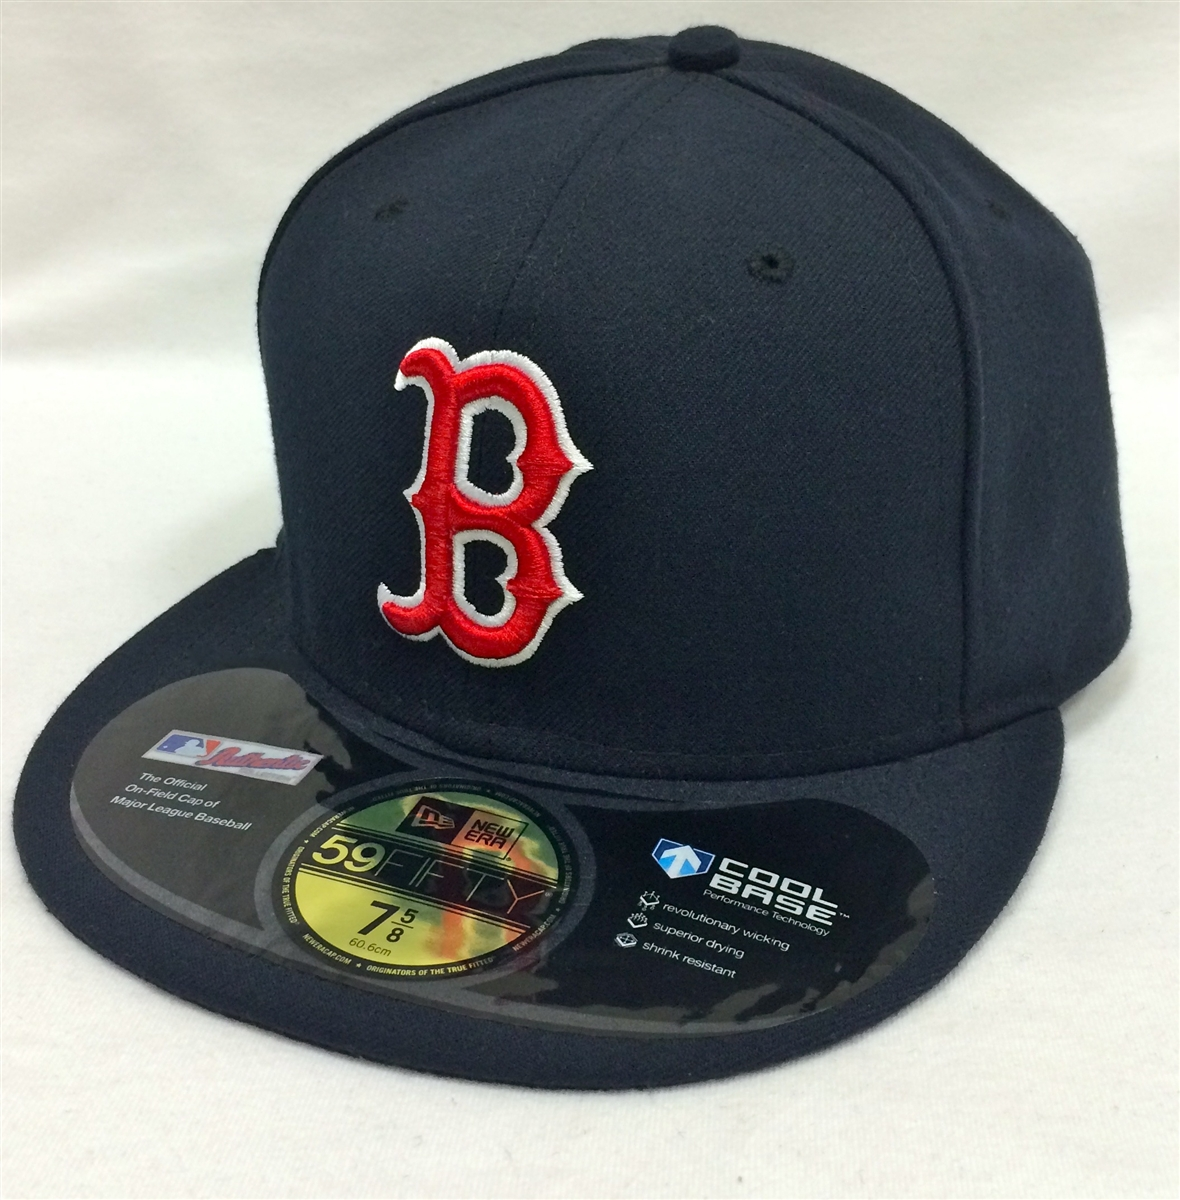 6e979812e1e825 New Era 59Fifty On-Field Boston Red Sox Navy Fitted Cap